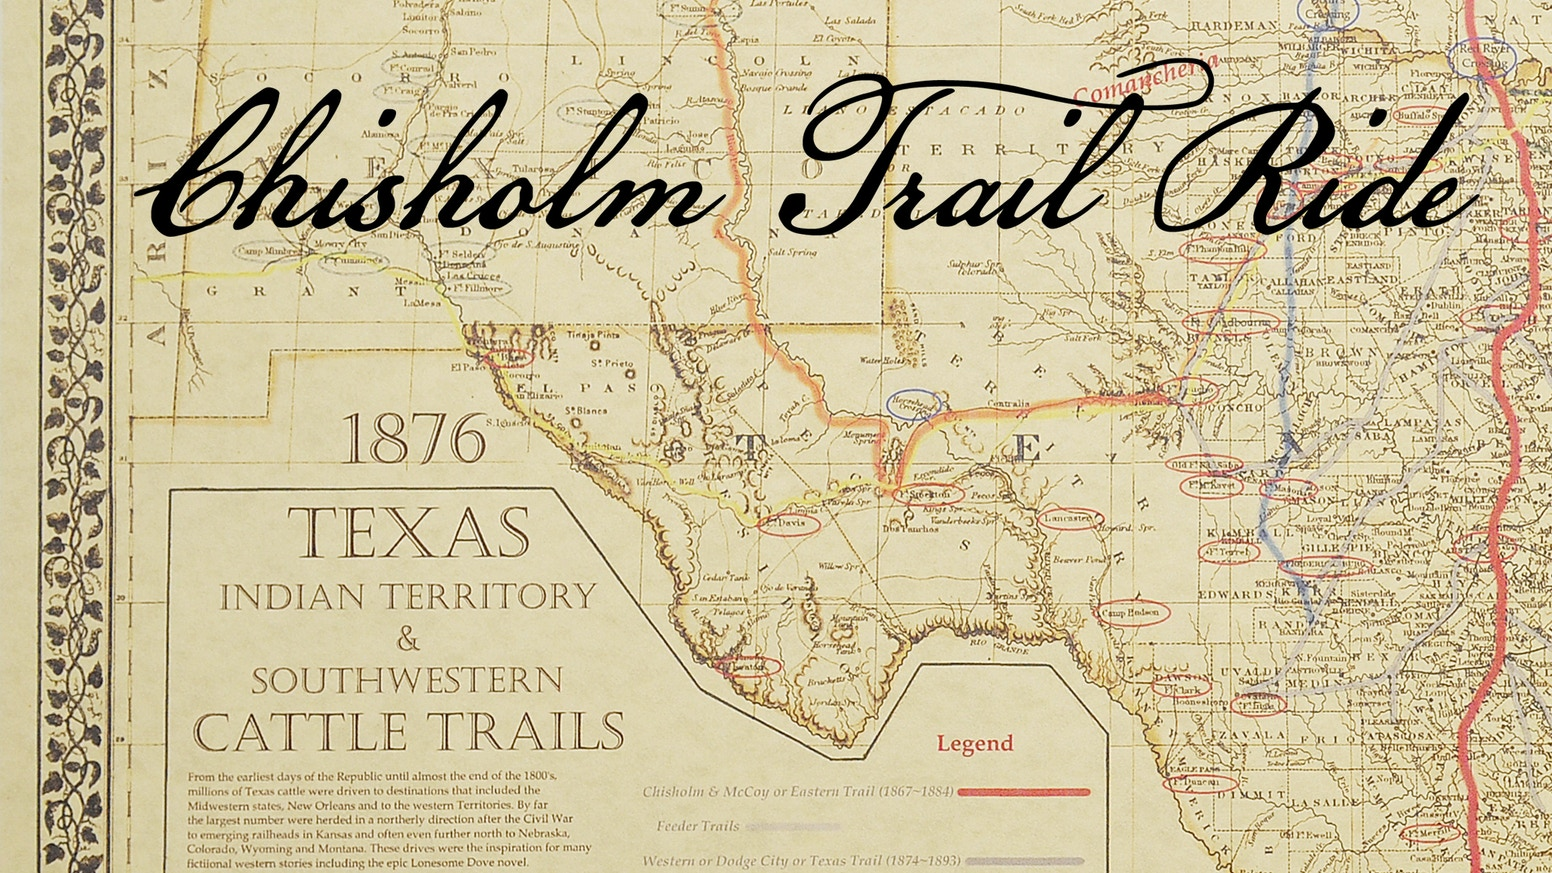 Chisholm Trail Ride By Chad Nicholson Tyler Sharp Kickstarter - Chisholm trail map